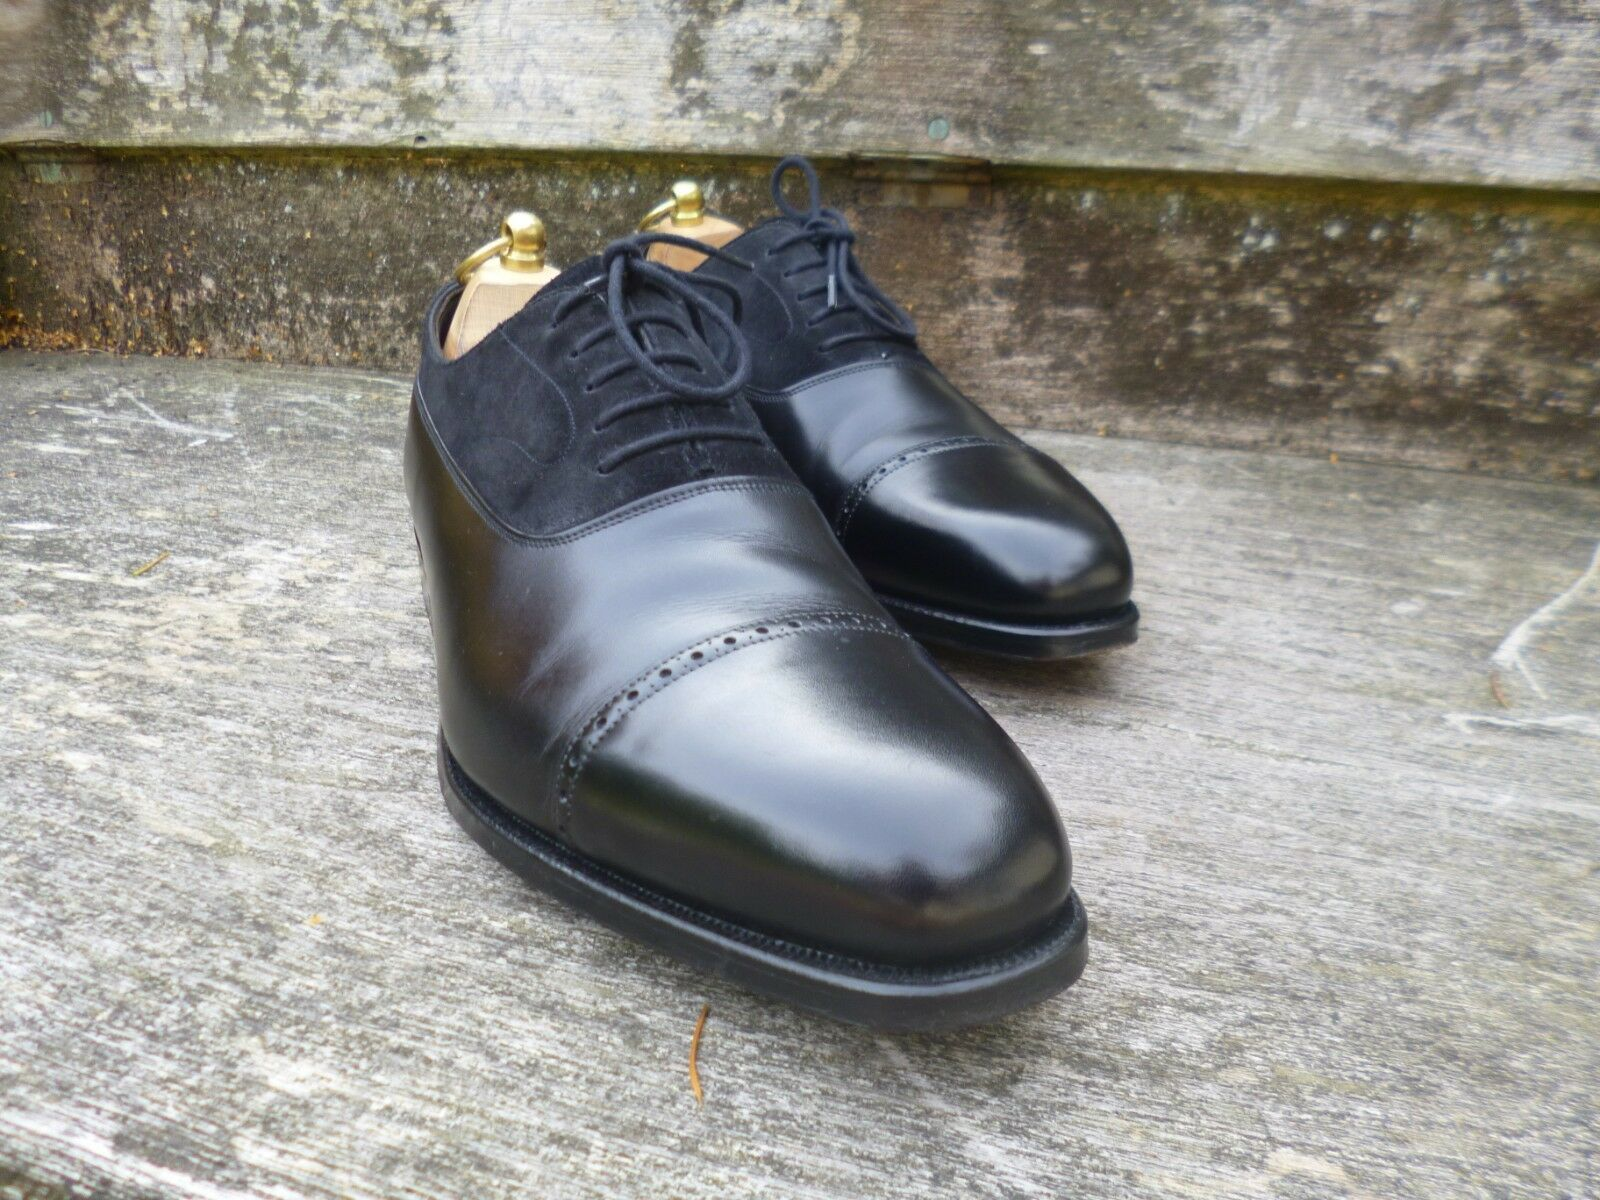 HENRY MAXWELL BROGUES BROGUES BROGUES – BLACK – UK 7 – SUPERB CONDITION - GOOD FOR CHURCH f99d33